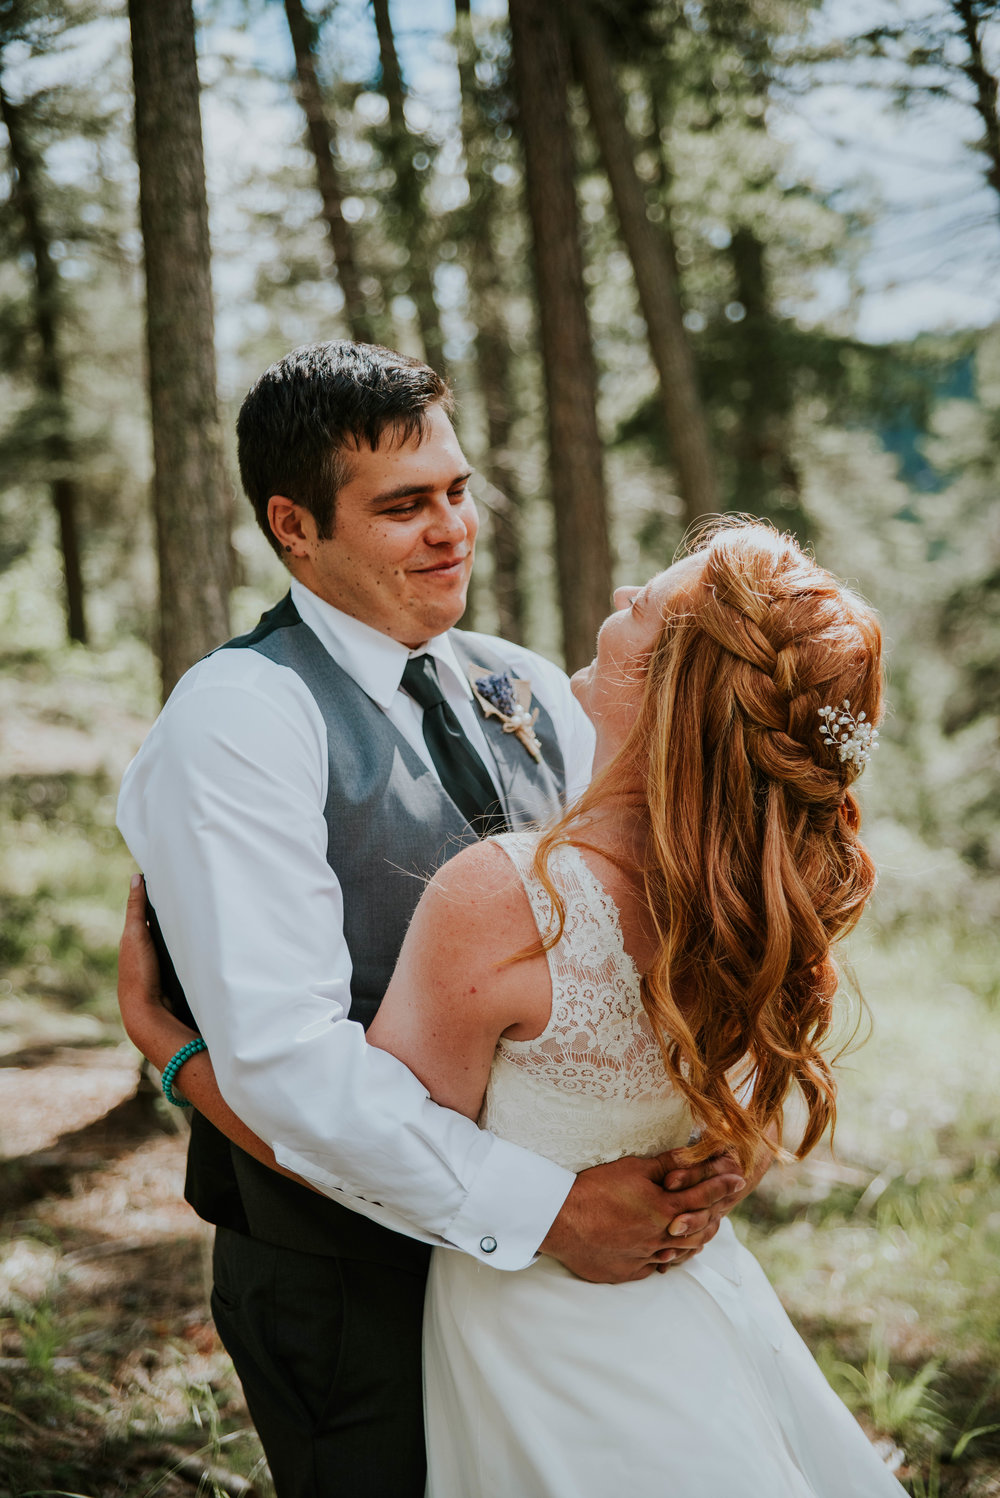 whether it's a private moment between bride and groom -